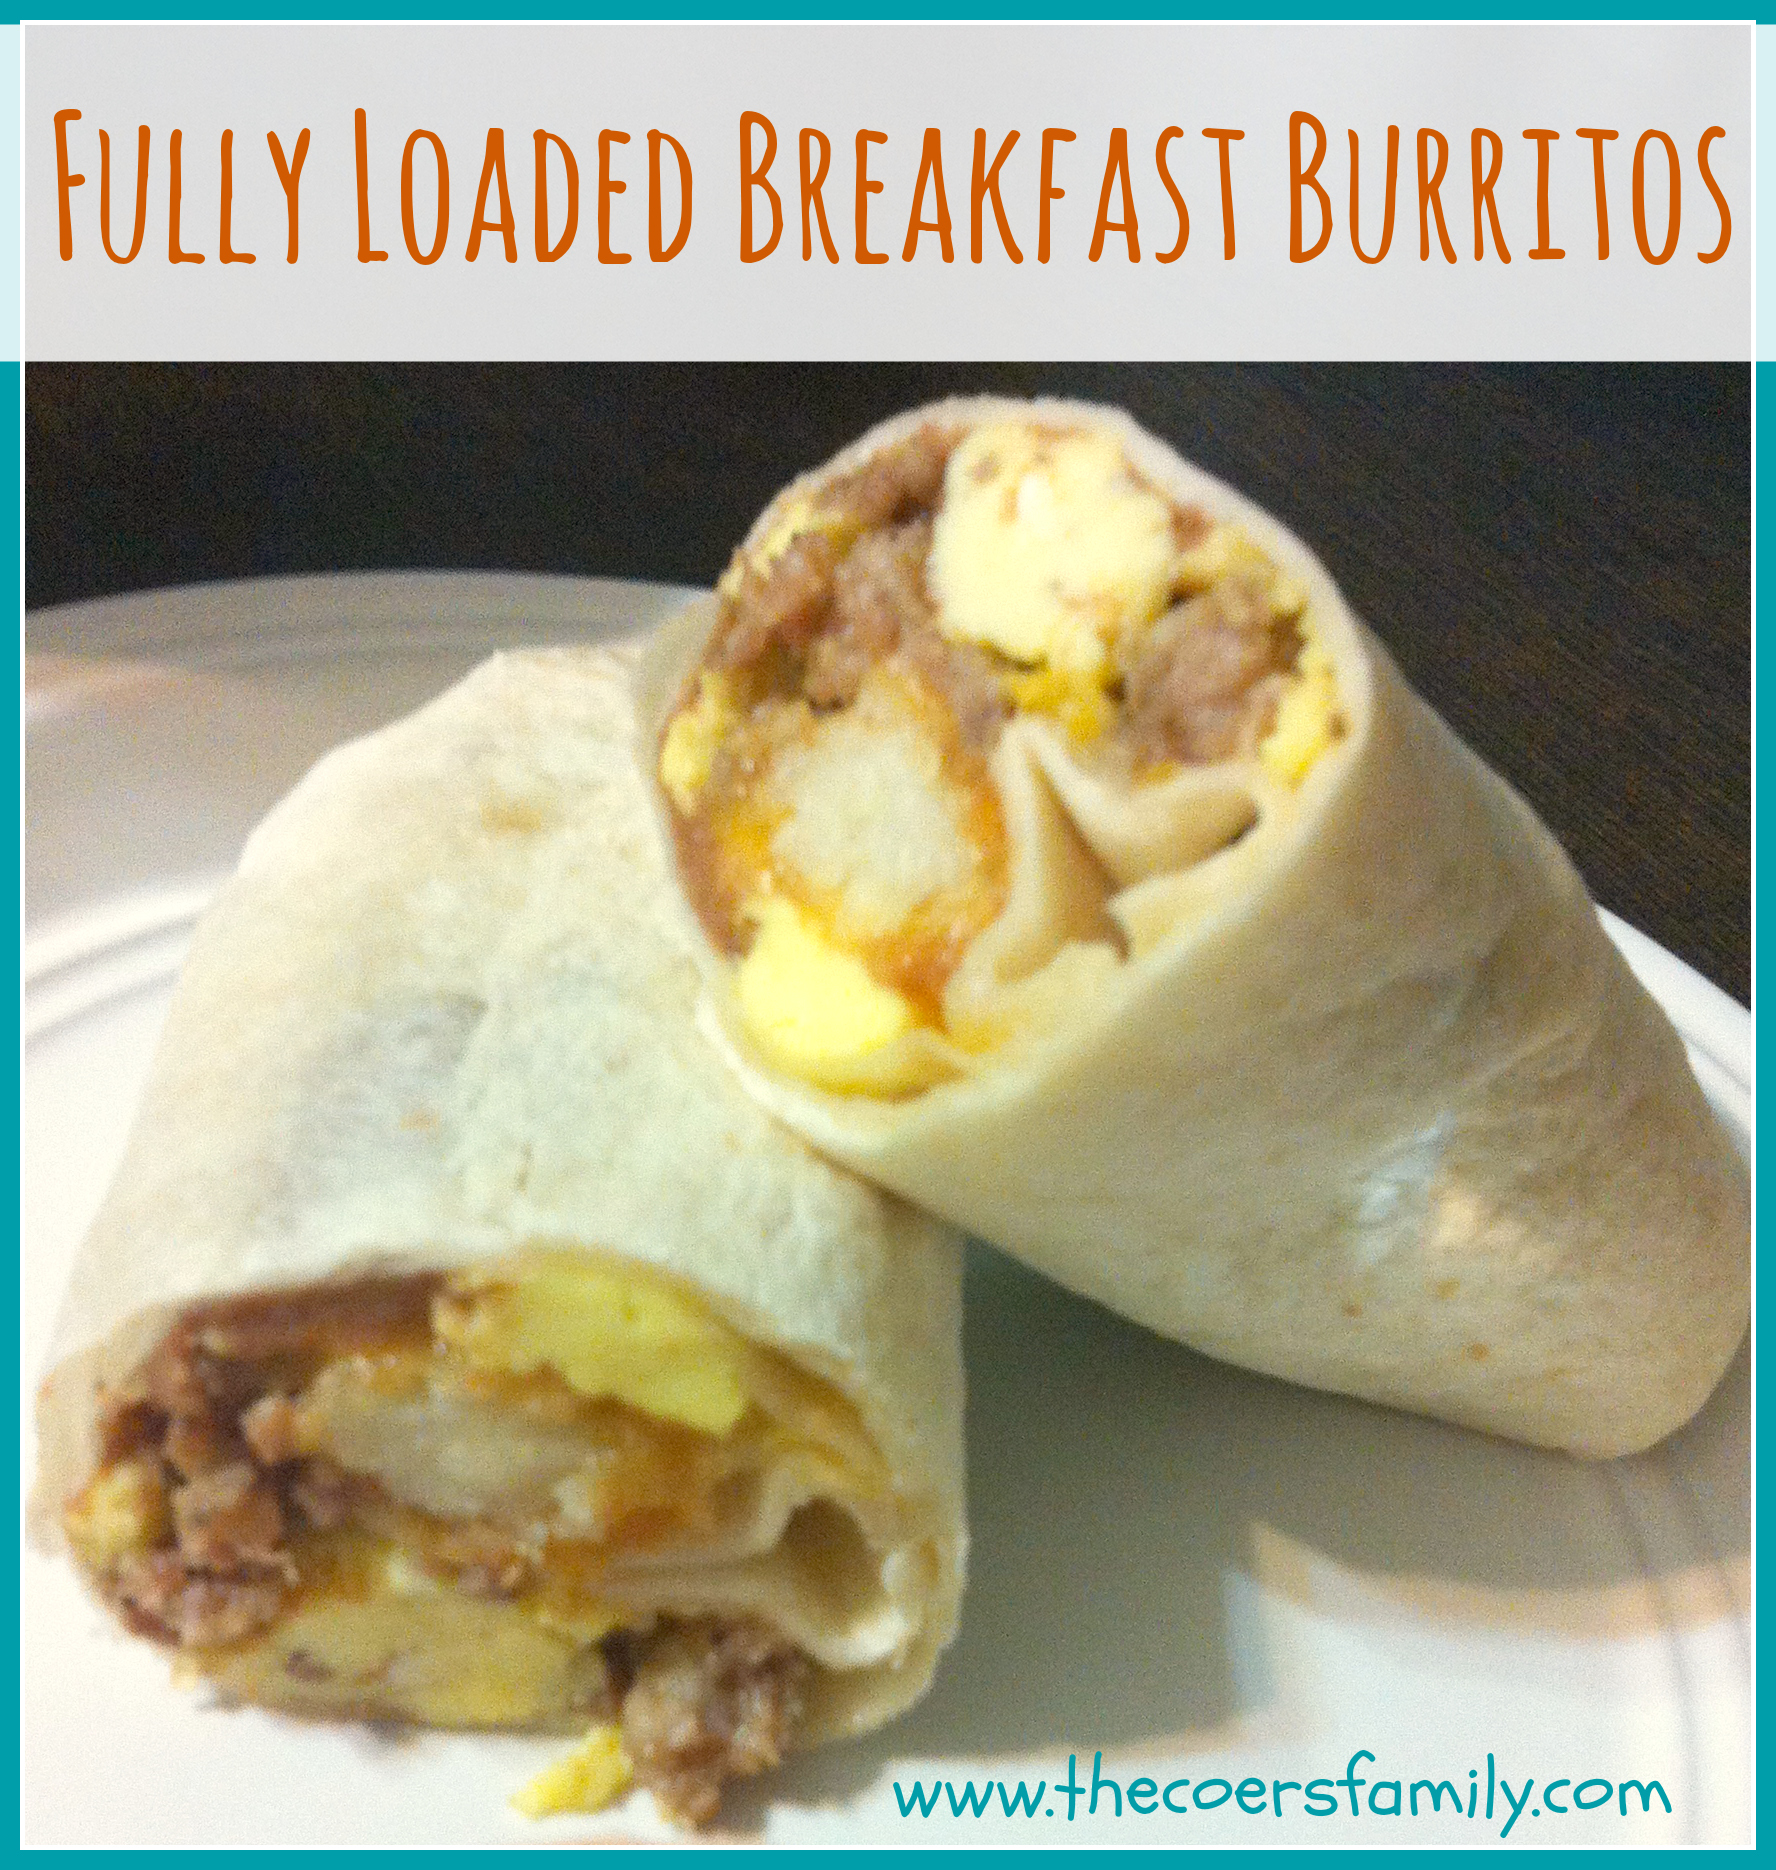 Breakfast Burritos - The Coers Family